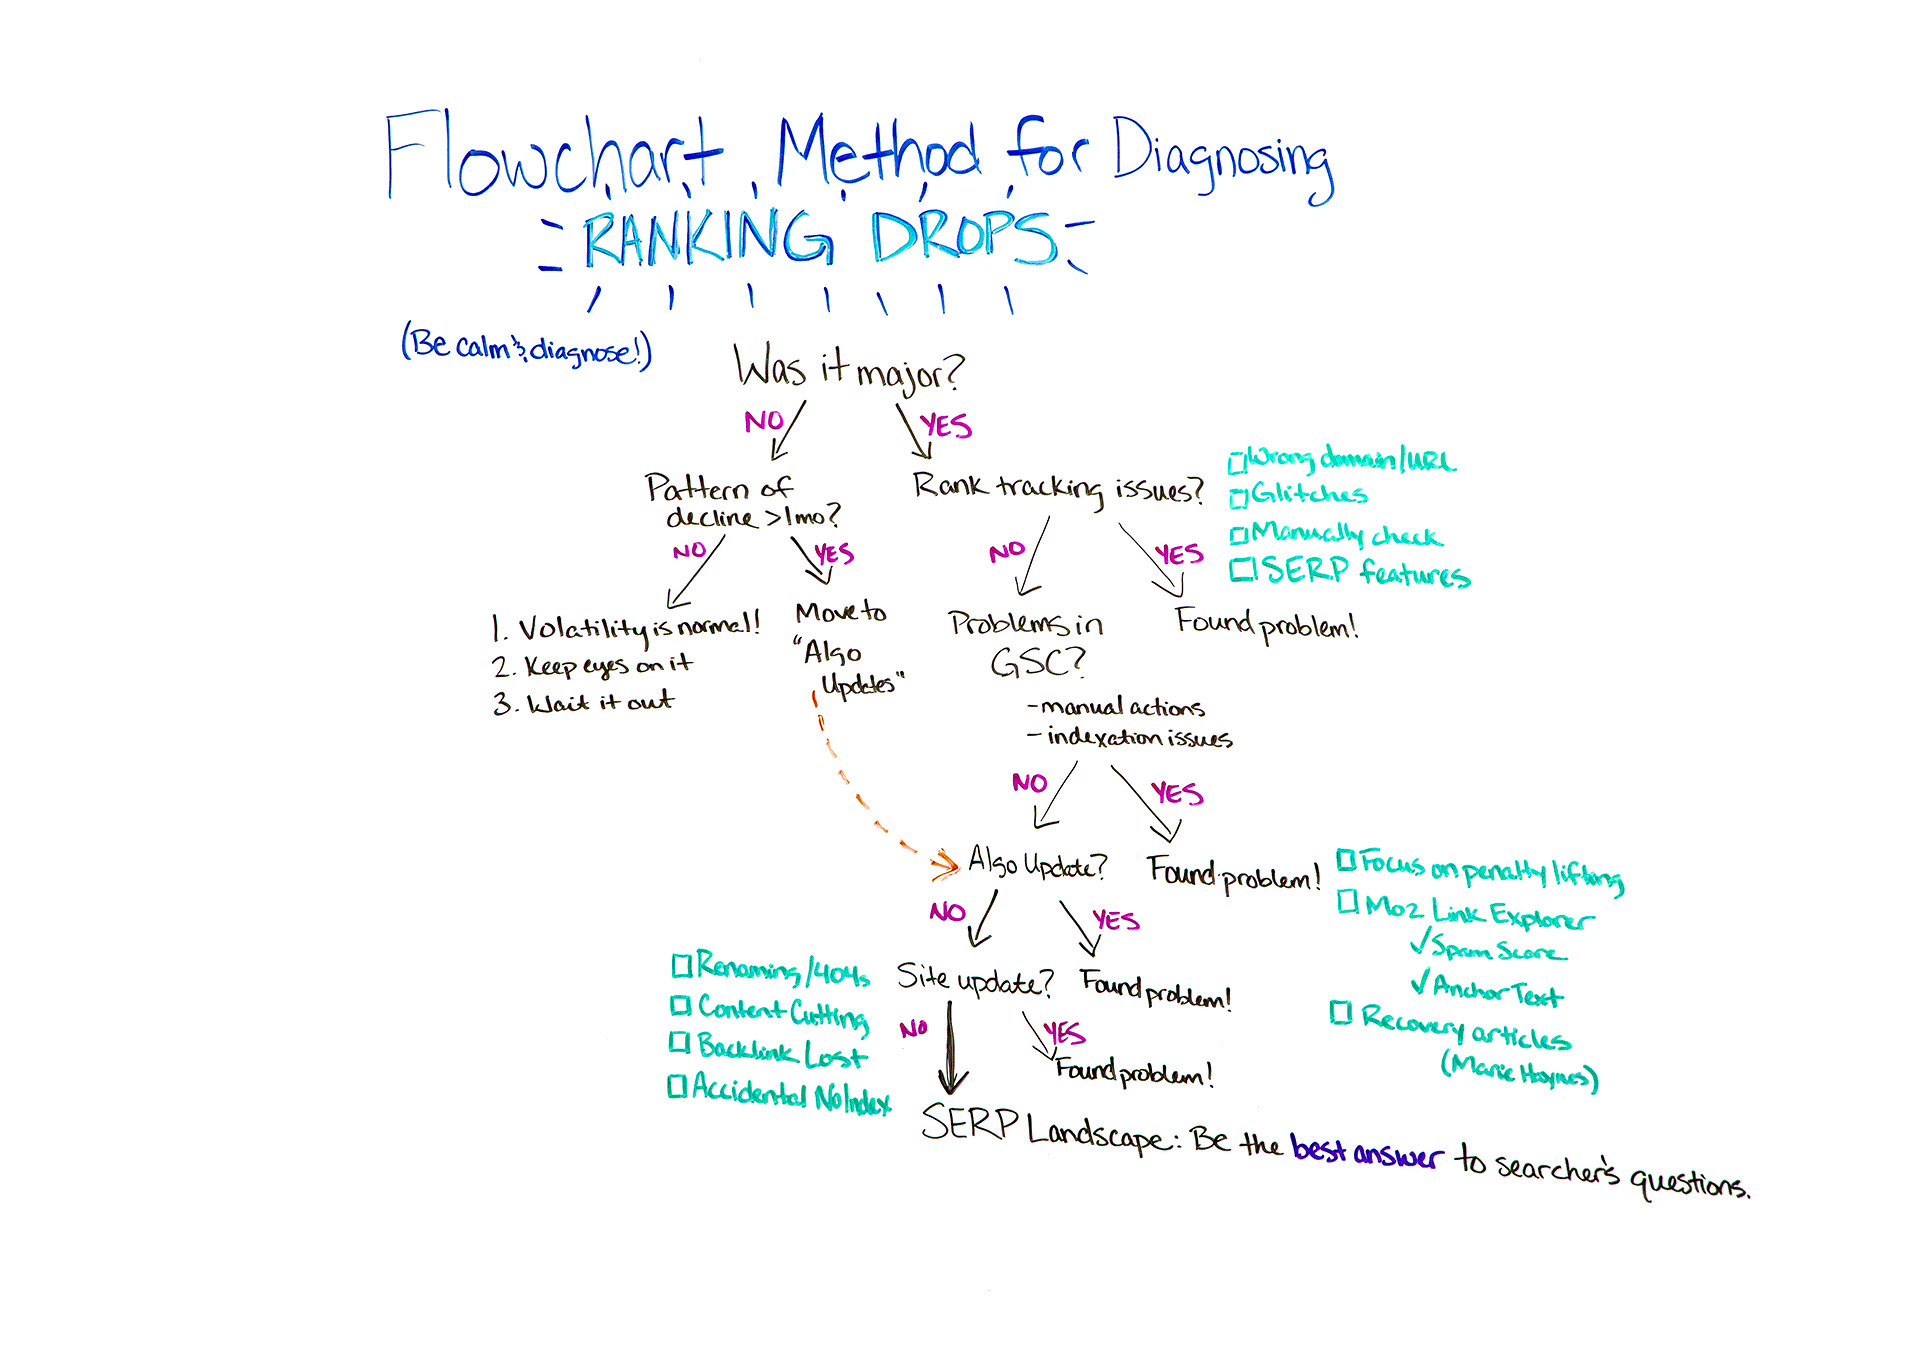 Using the Flowchart Method for Diagnosing Ranking Drops - Whiteboard